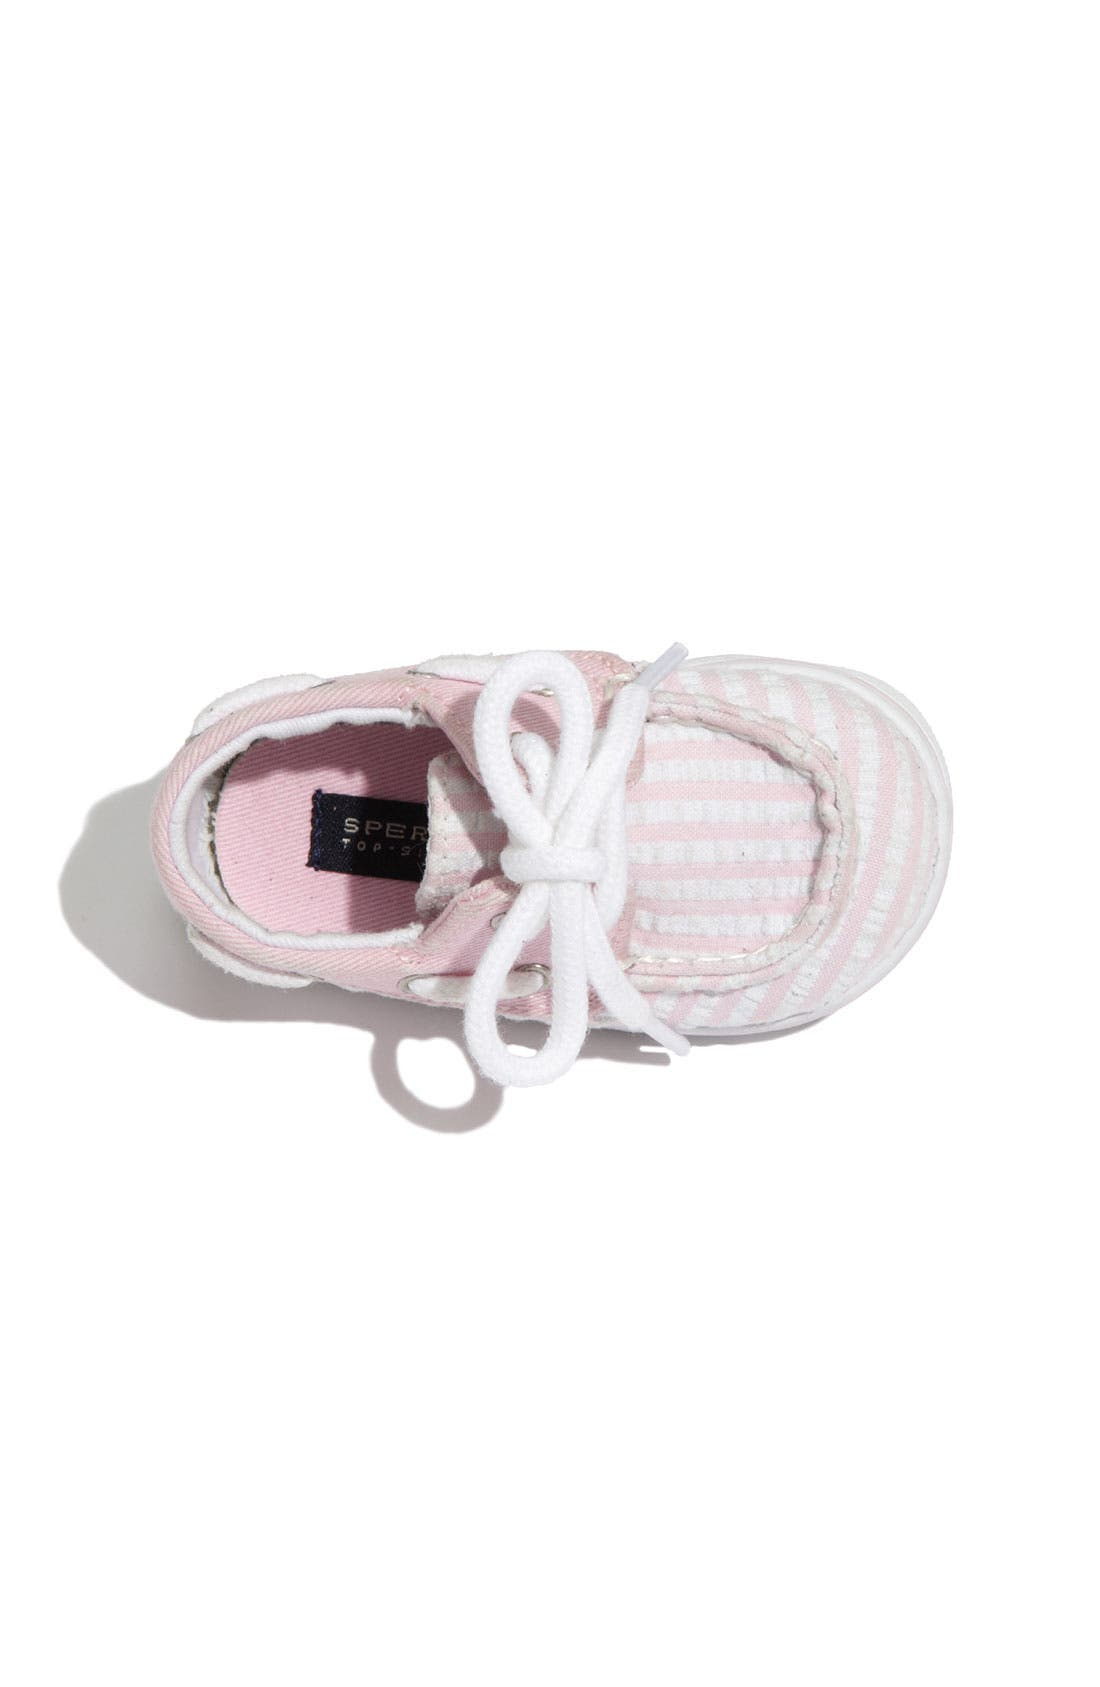 Alternate Image 3  - Sperry Kids 'Bahama' Crib Shoe (Baby)